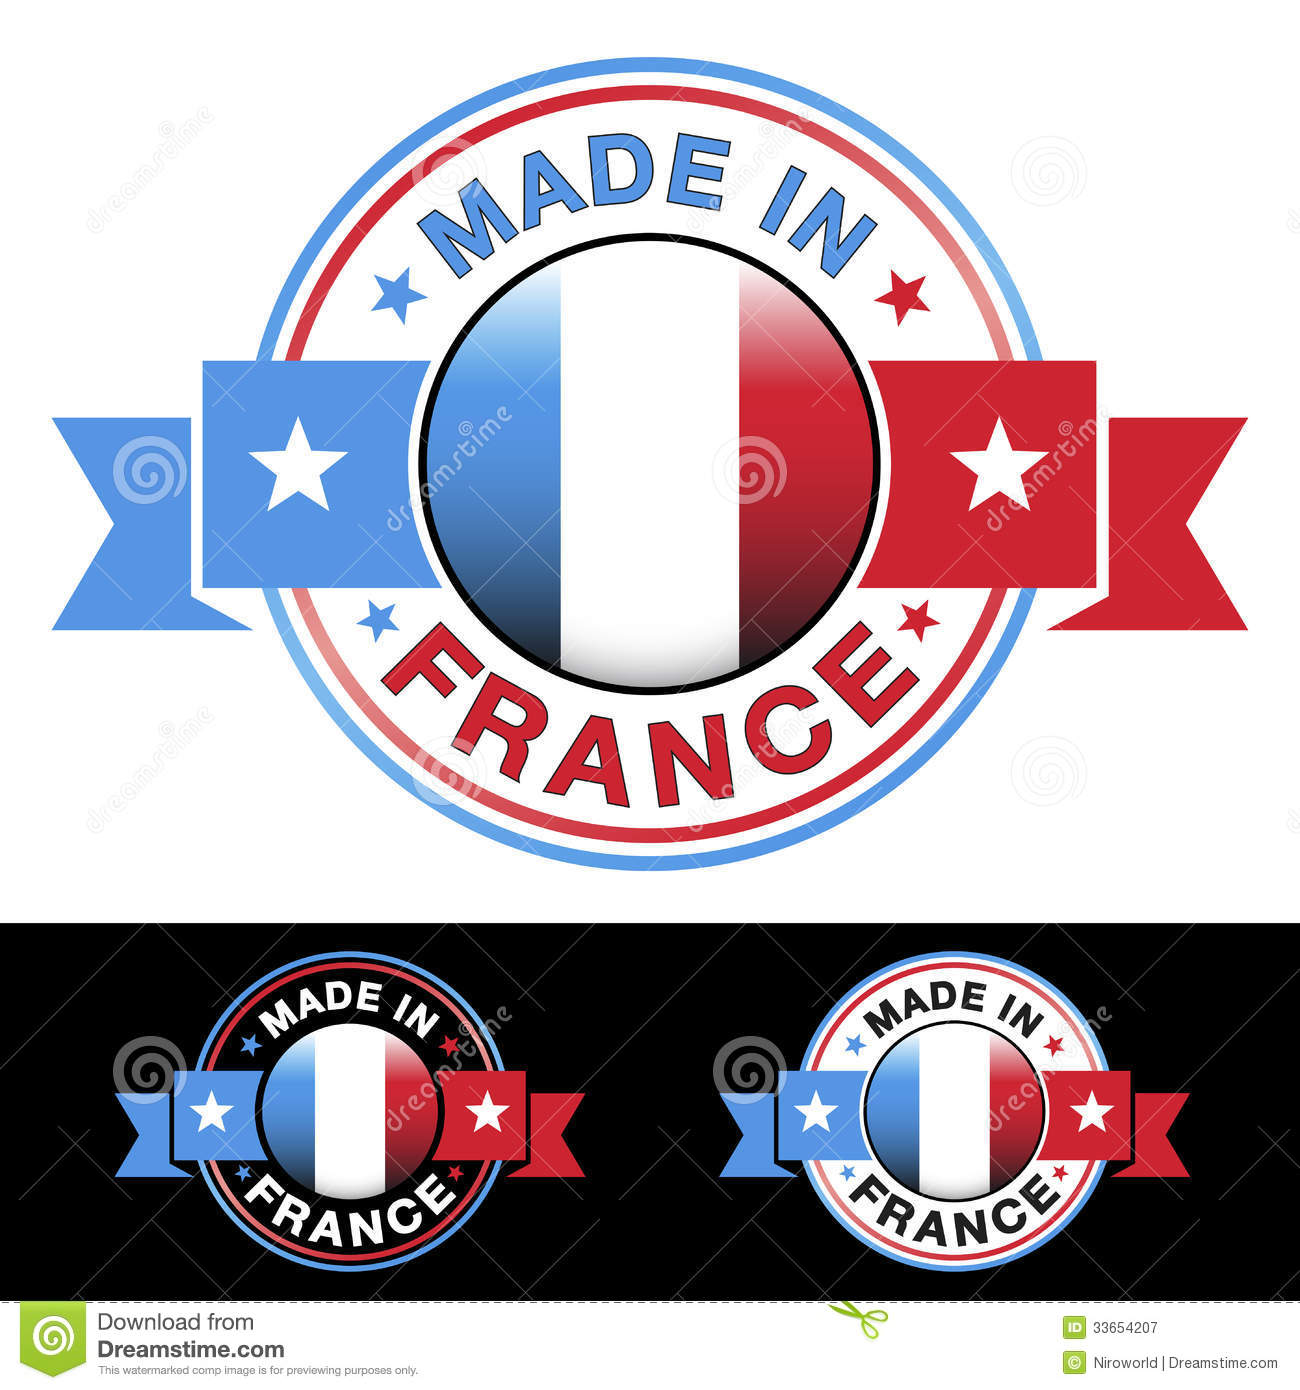 made in france badge royalty free stock photography image 33654207. Black Bedroom Furniture Sets. Home Design Ideas